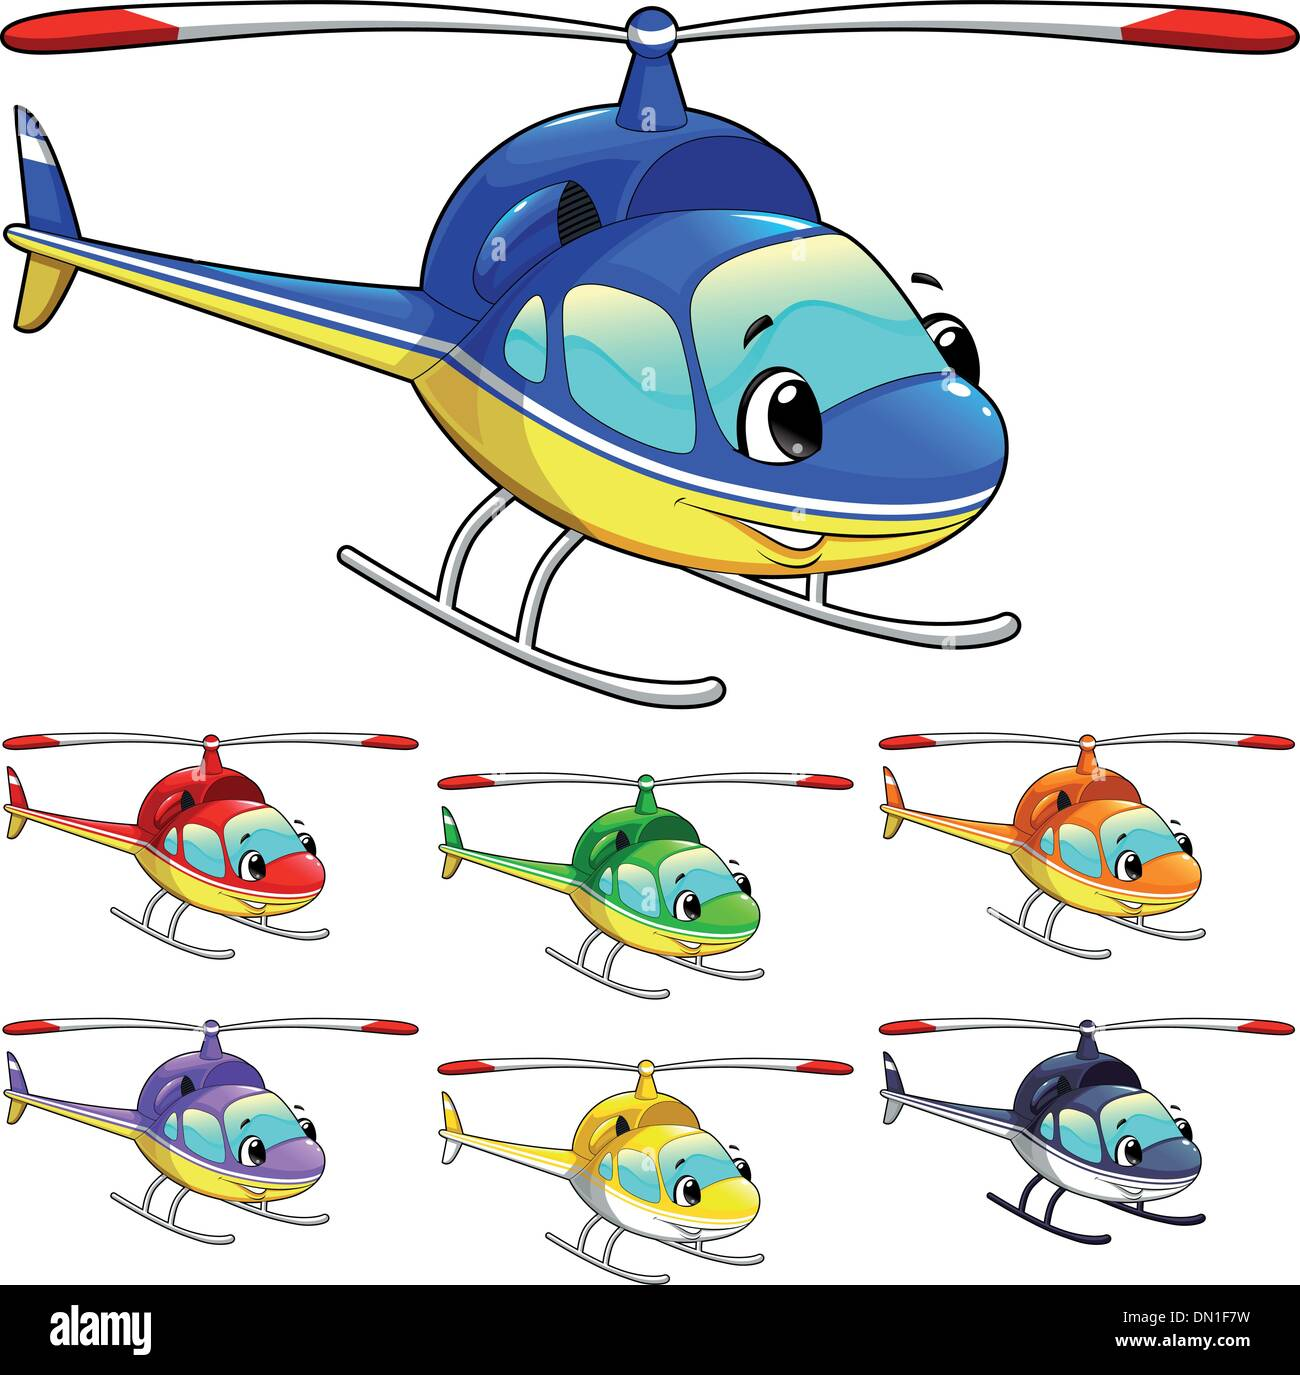 Funny helicopter. - Stock Vector